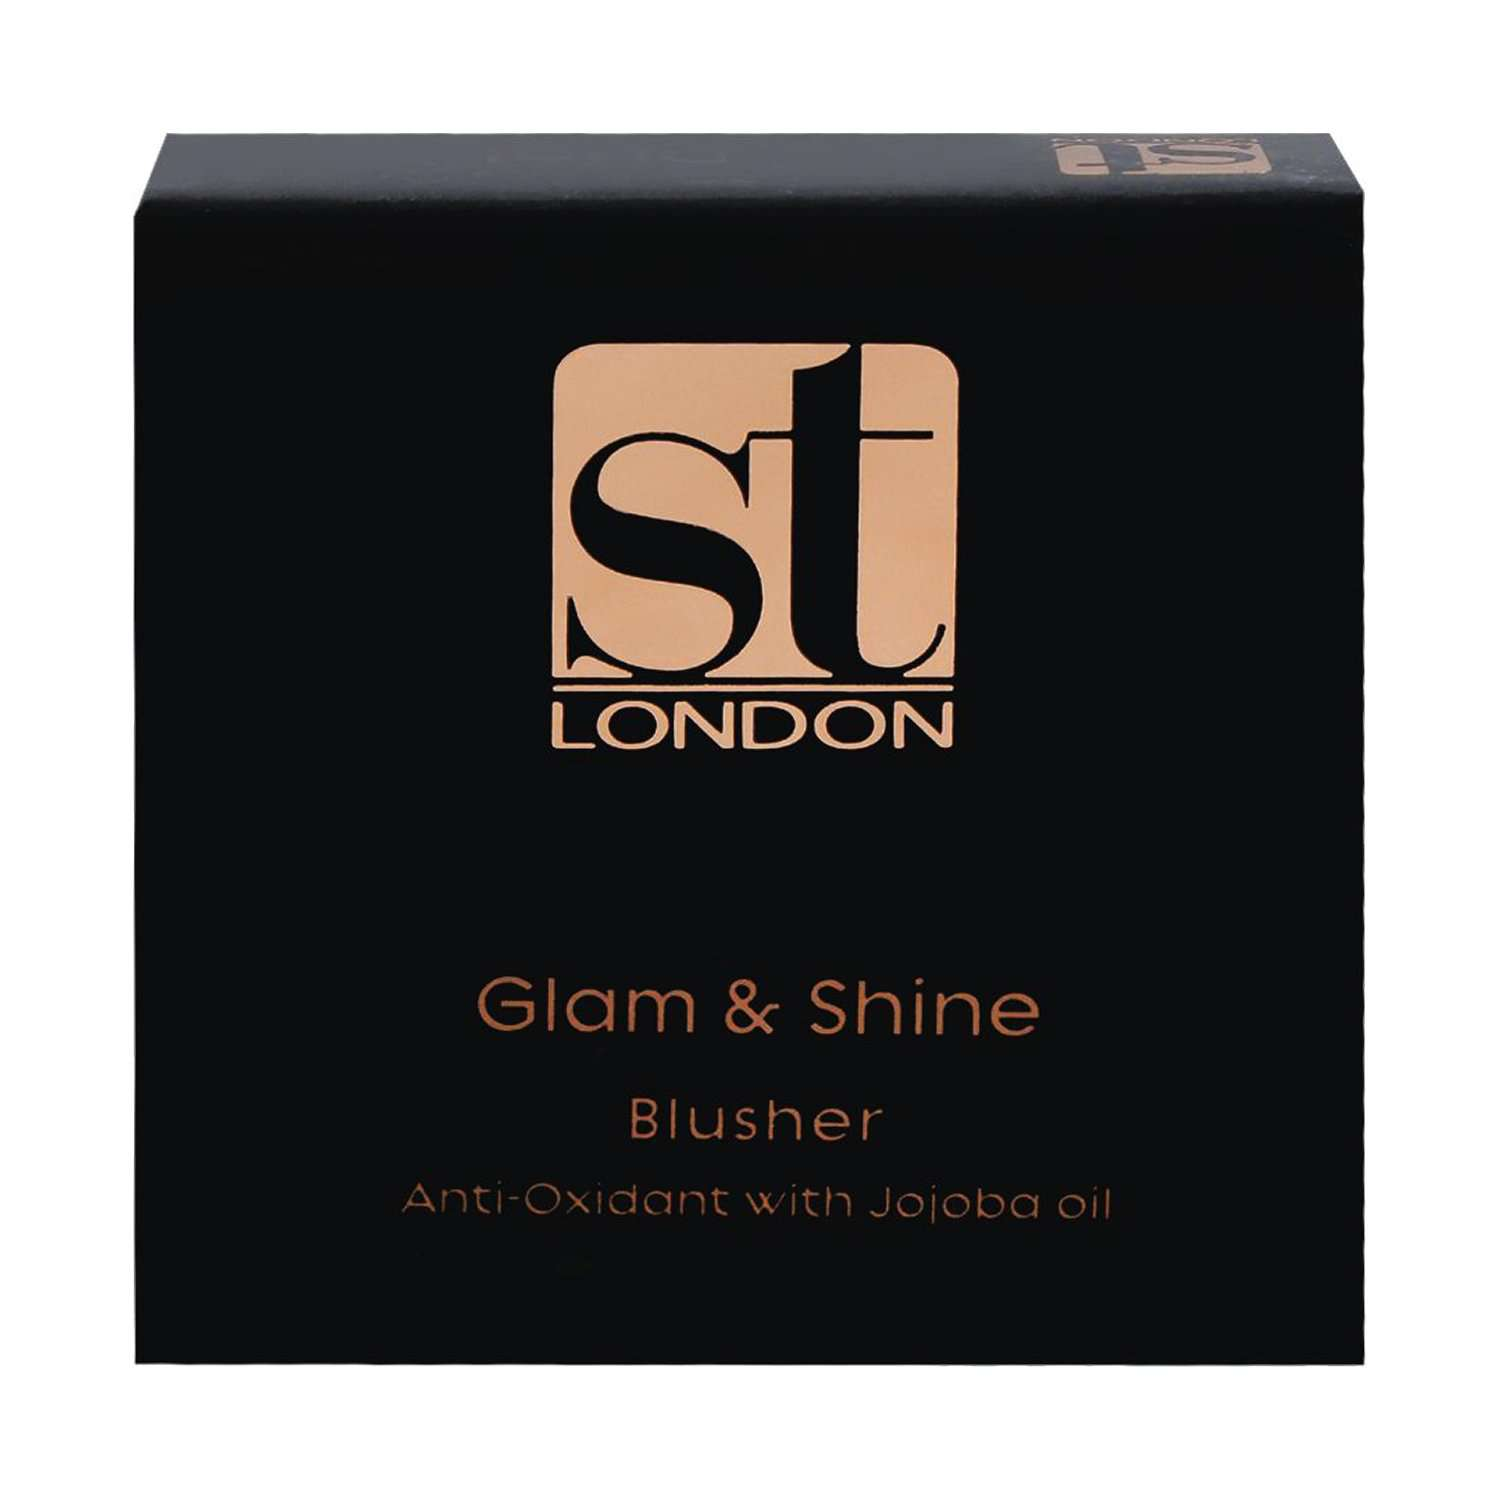 Glam & Shine Blusher - Satin Peach